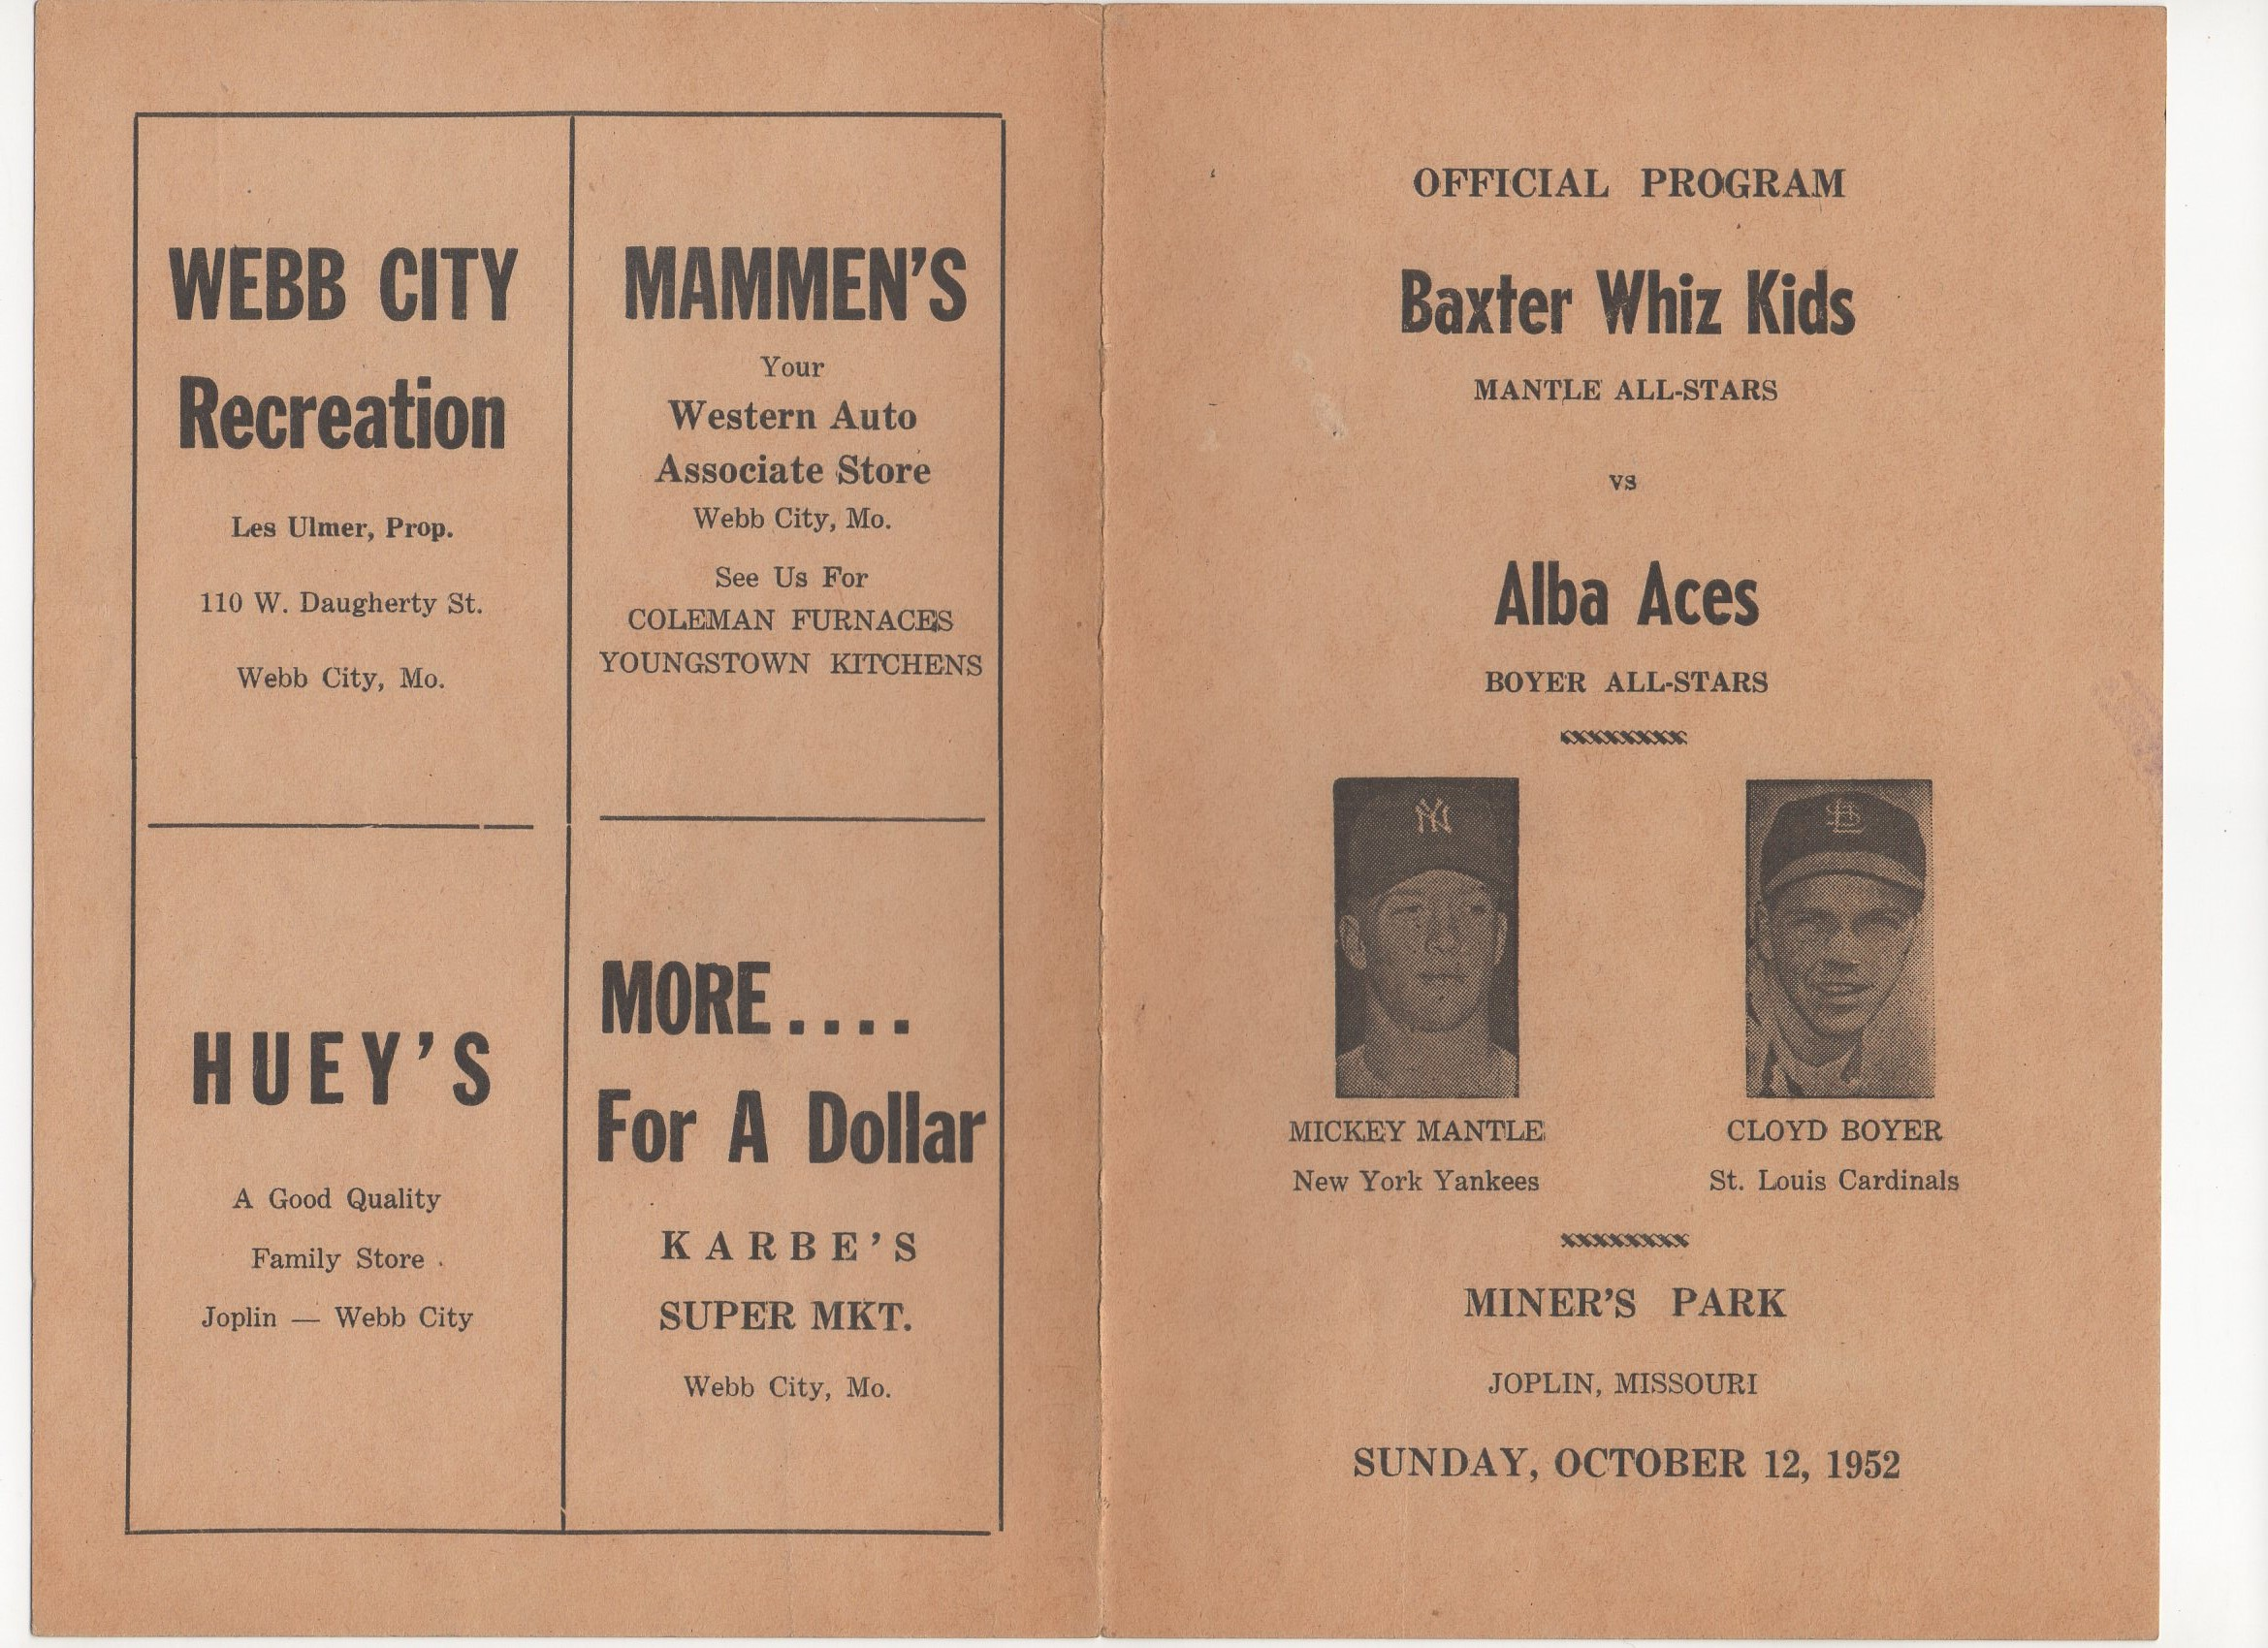 1952 baxter whiz kids program